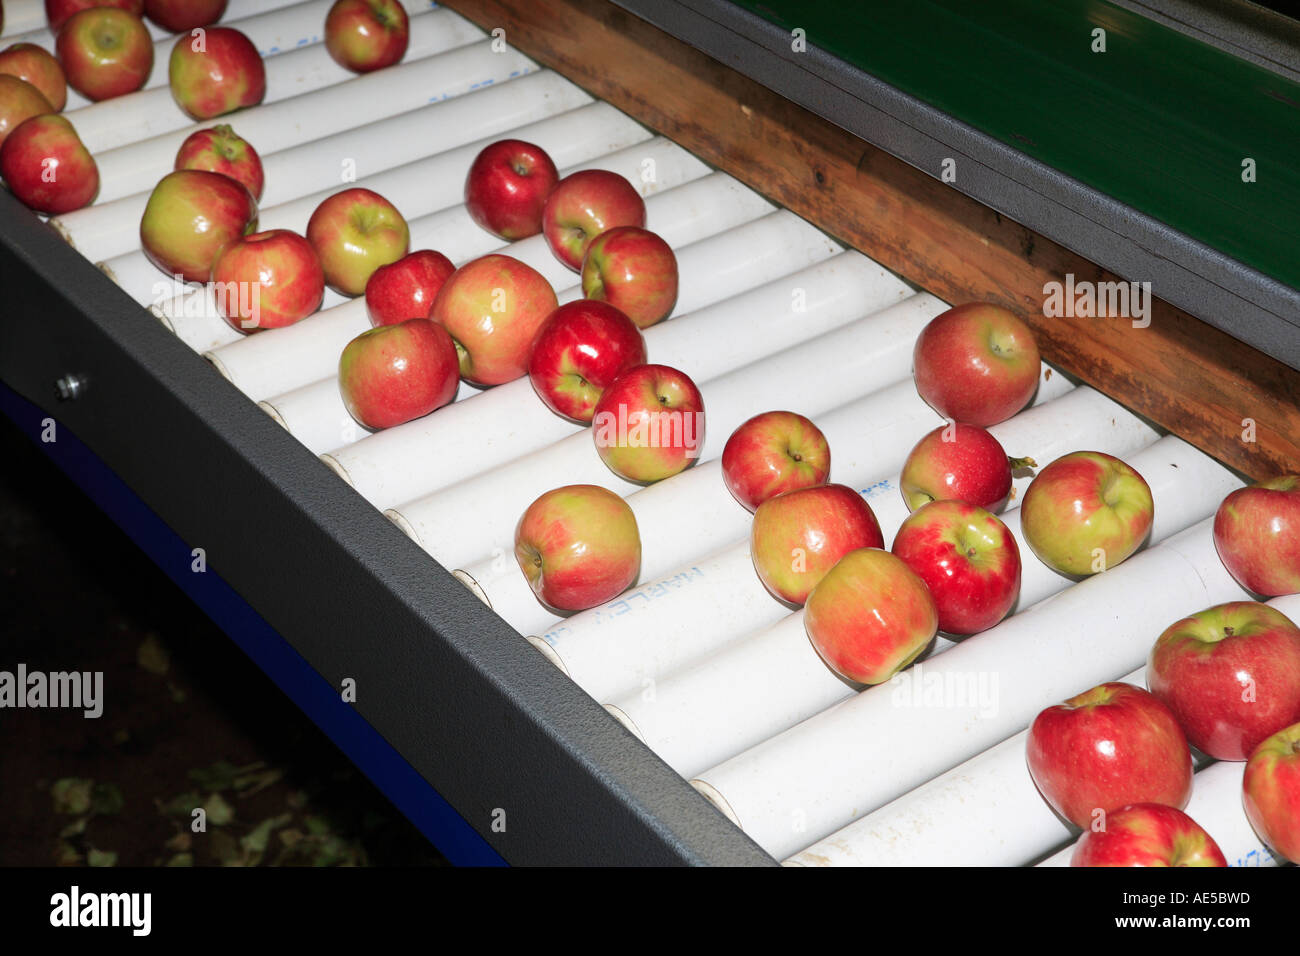 Xvr27's apples to apples page official rules junior 9+ (first.